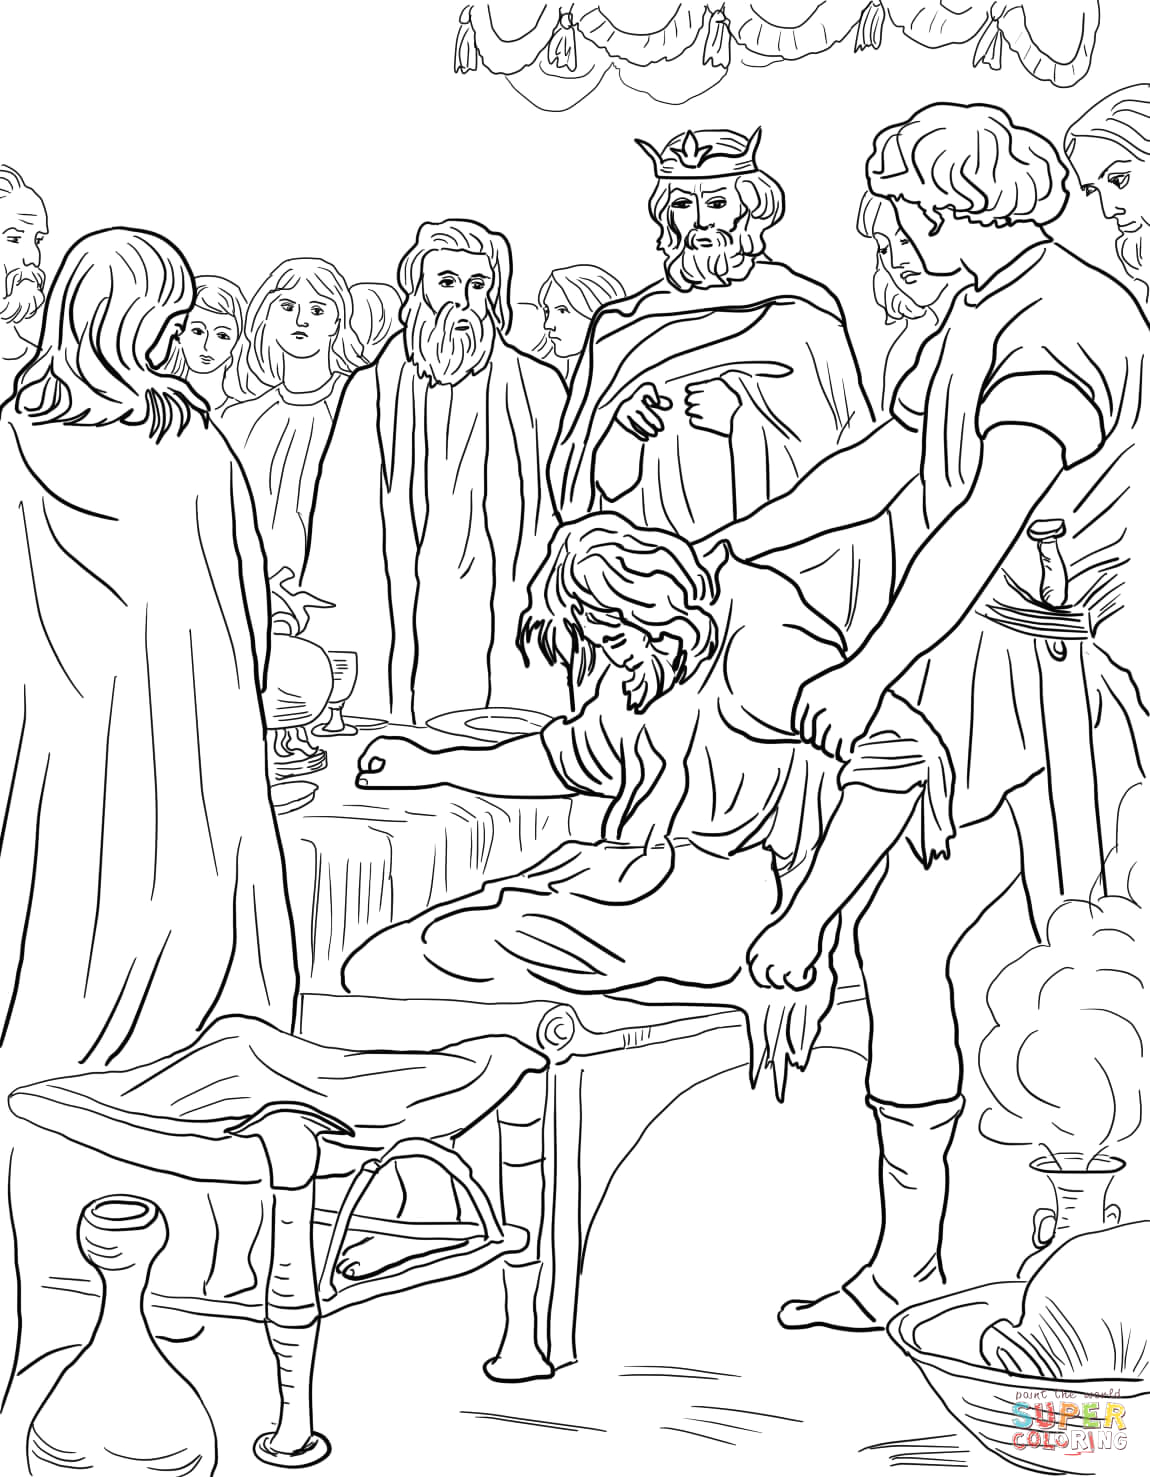 Parable Of the Wedding Feast Coloring Page Parable Of the Wedding Feast Coloring Page